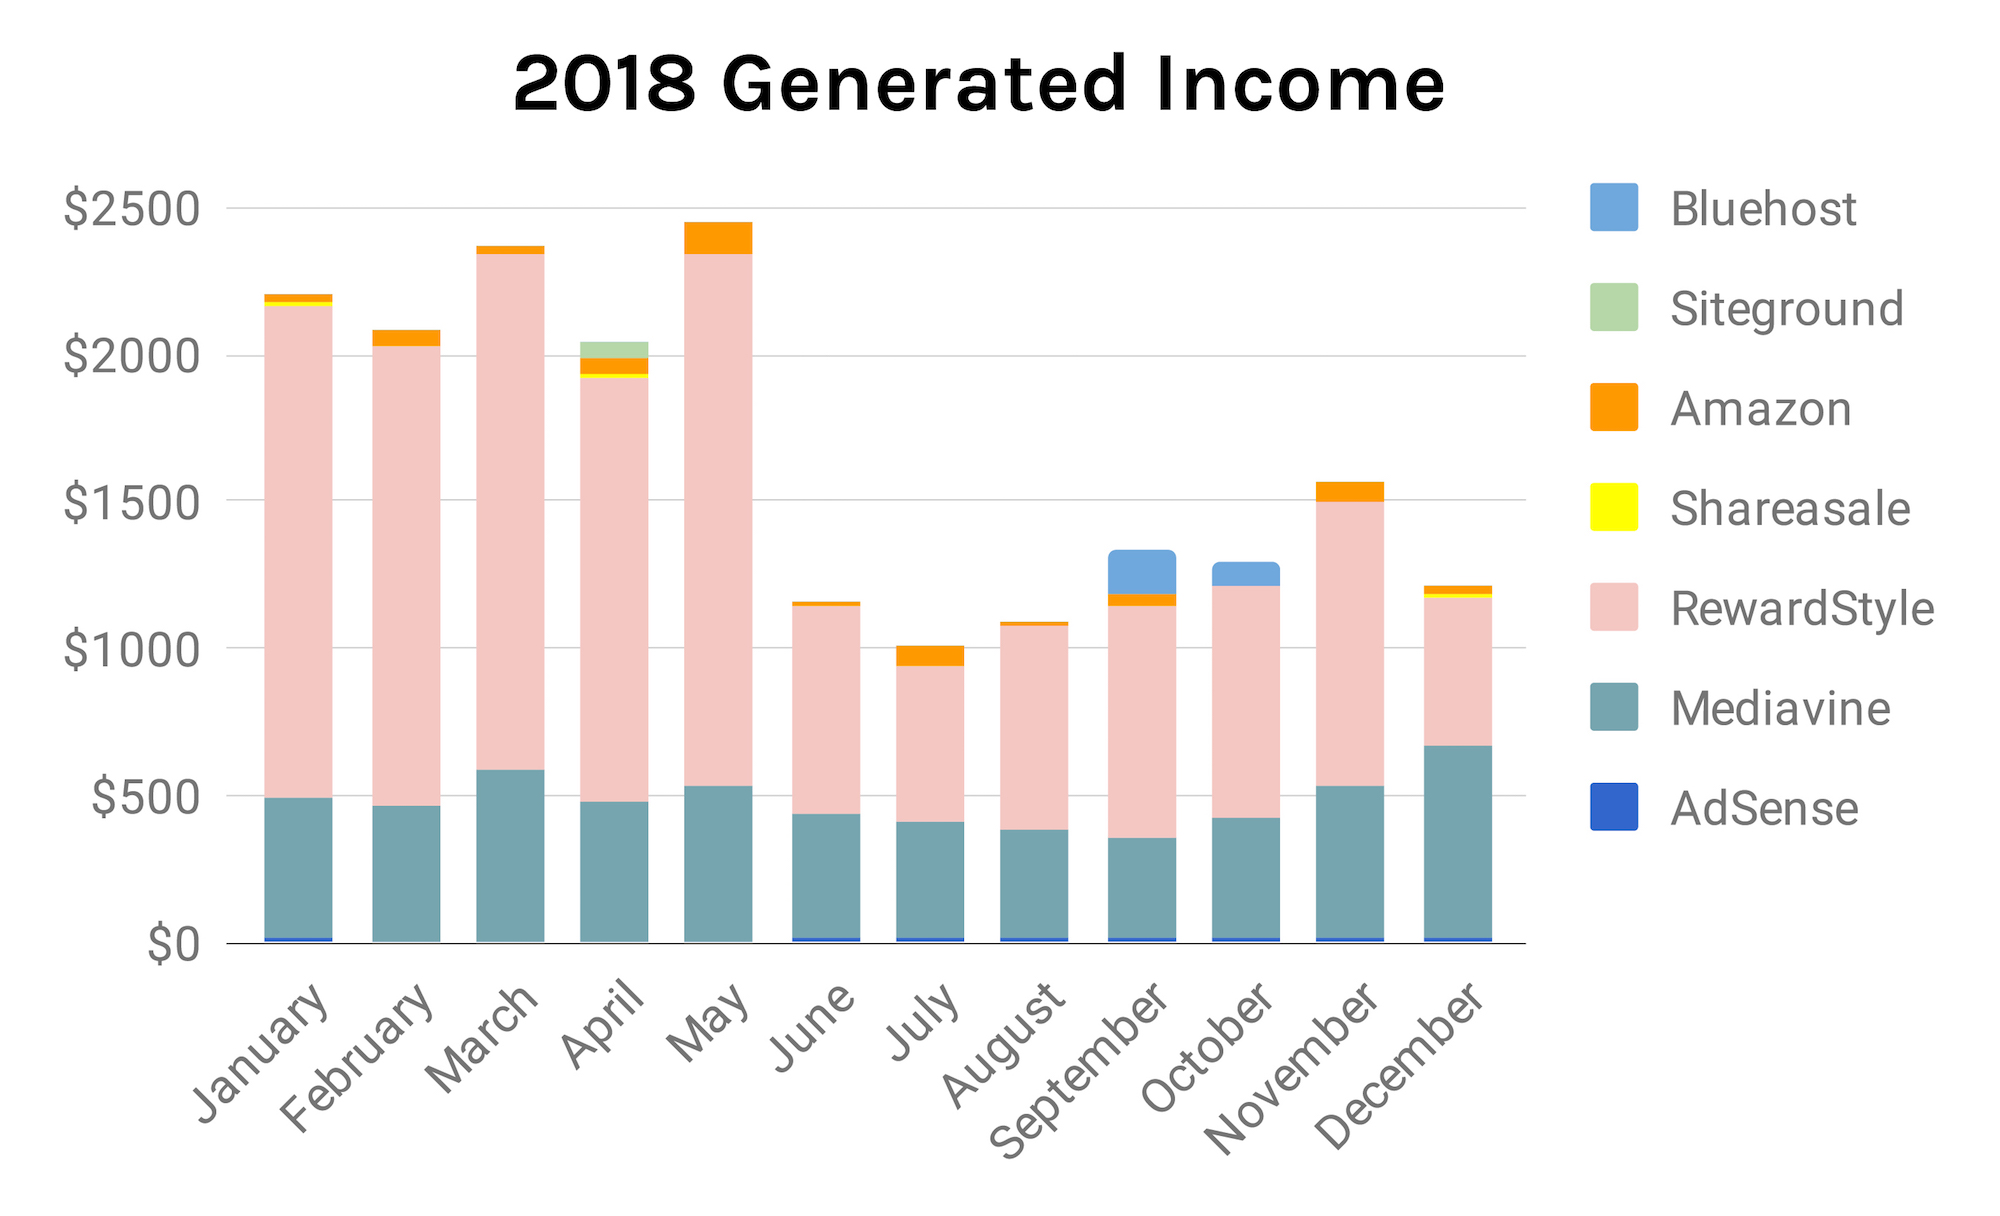 2018 Generated Income